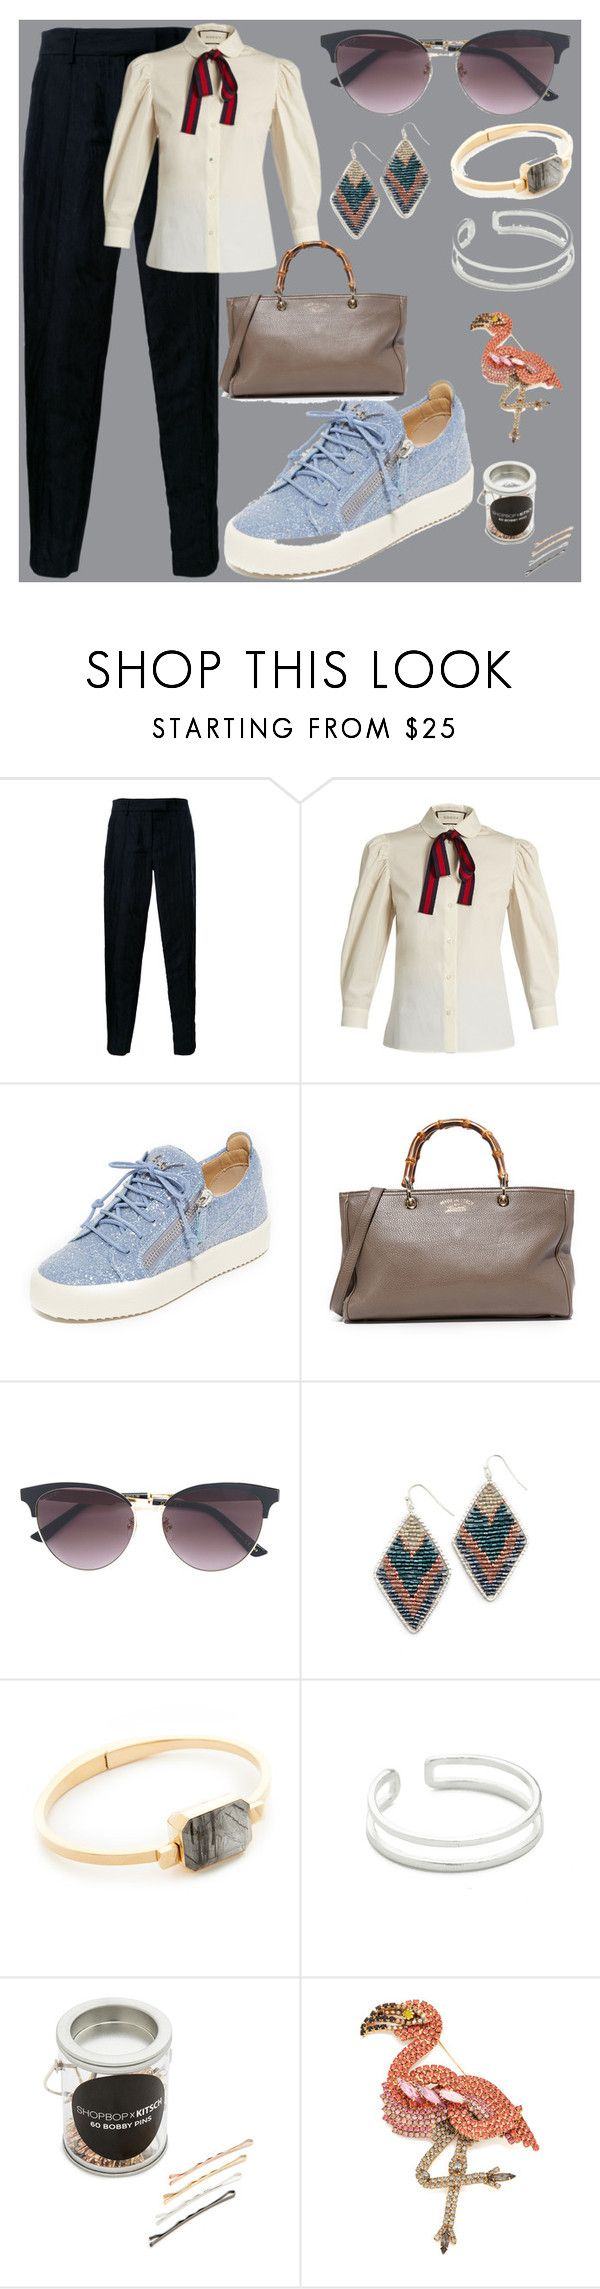 """Unique fashion"" by camry-brynn ❤ liked on Polyvore featuring STRATEAS.CARLUCCI, Gucci, Giuseppe Zanotti, NAKAMOL, Ringly, Maya Magal, Kitsch and Elizabeth Cole"